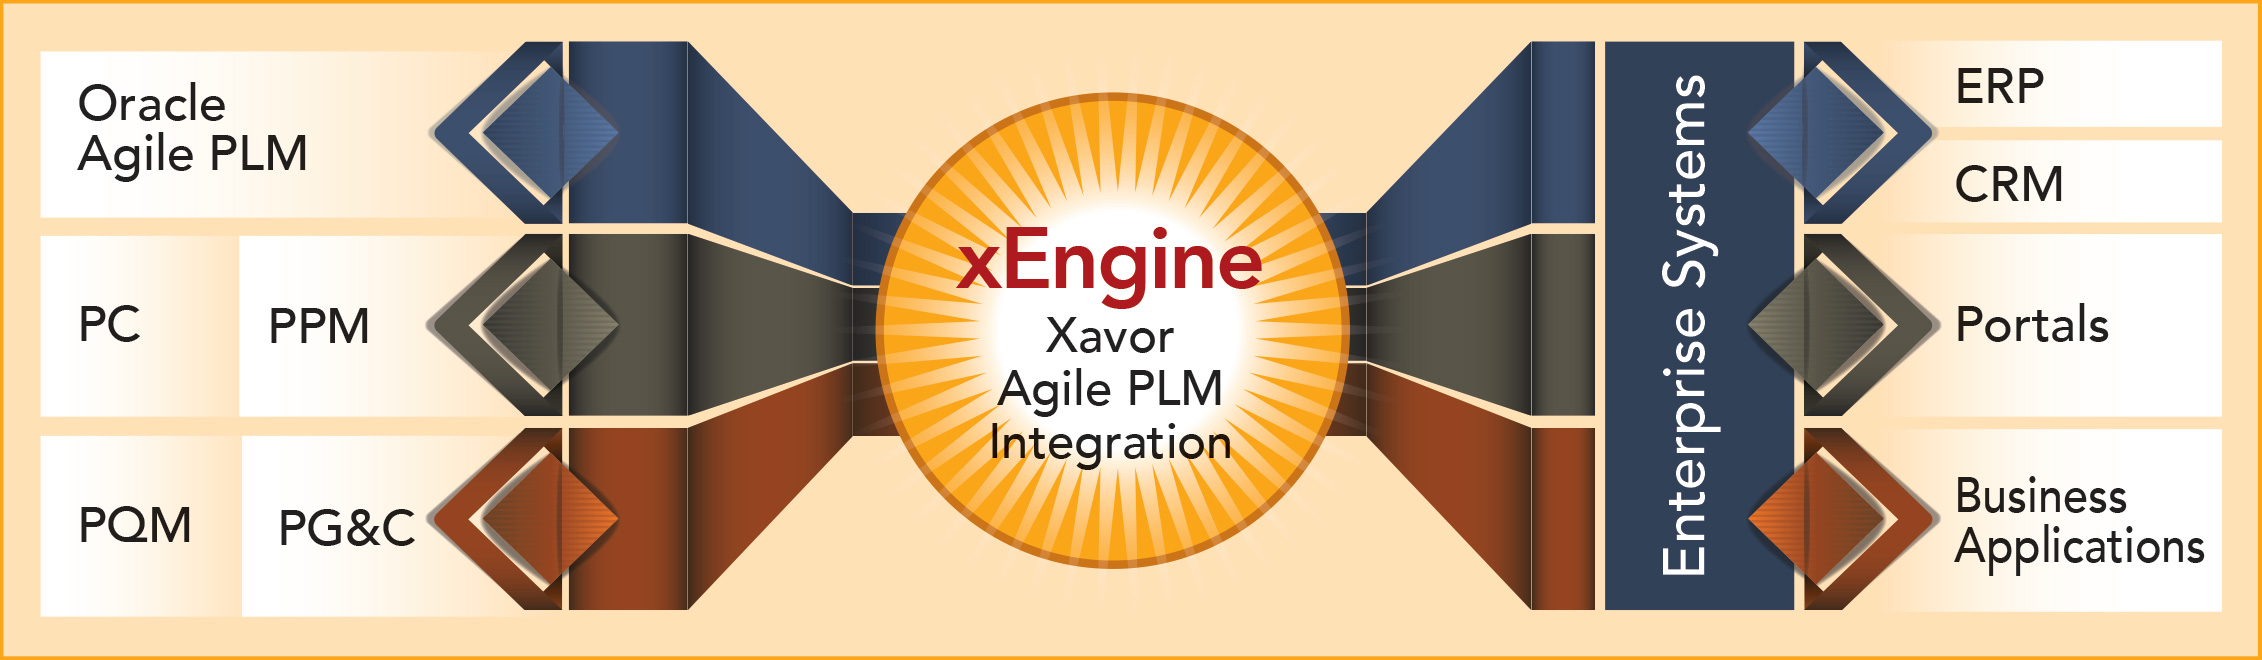 xEngine-Graphic